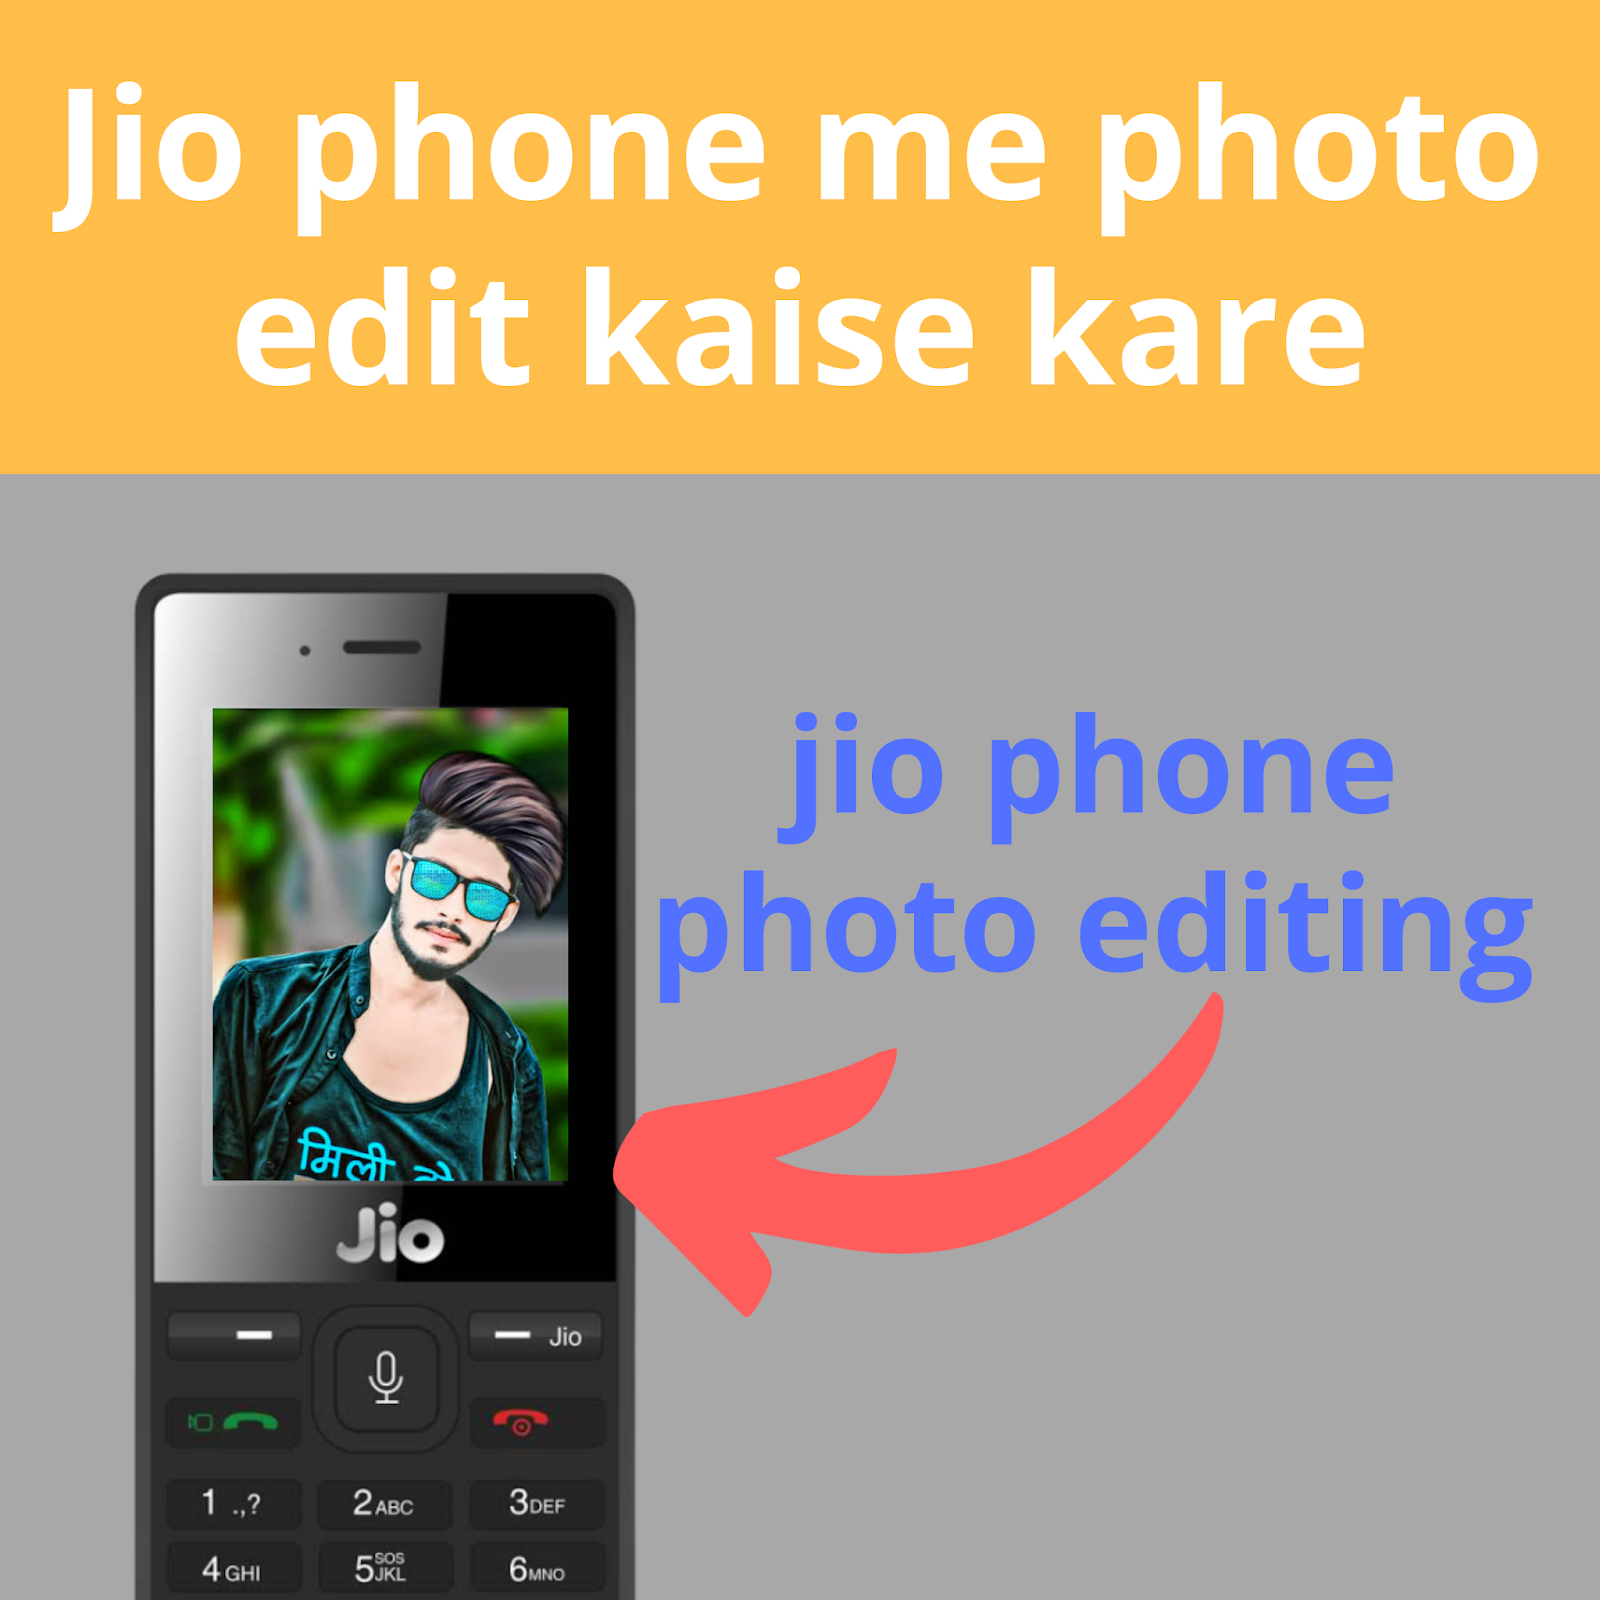 Jio phone me photo edit kaise kare